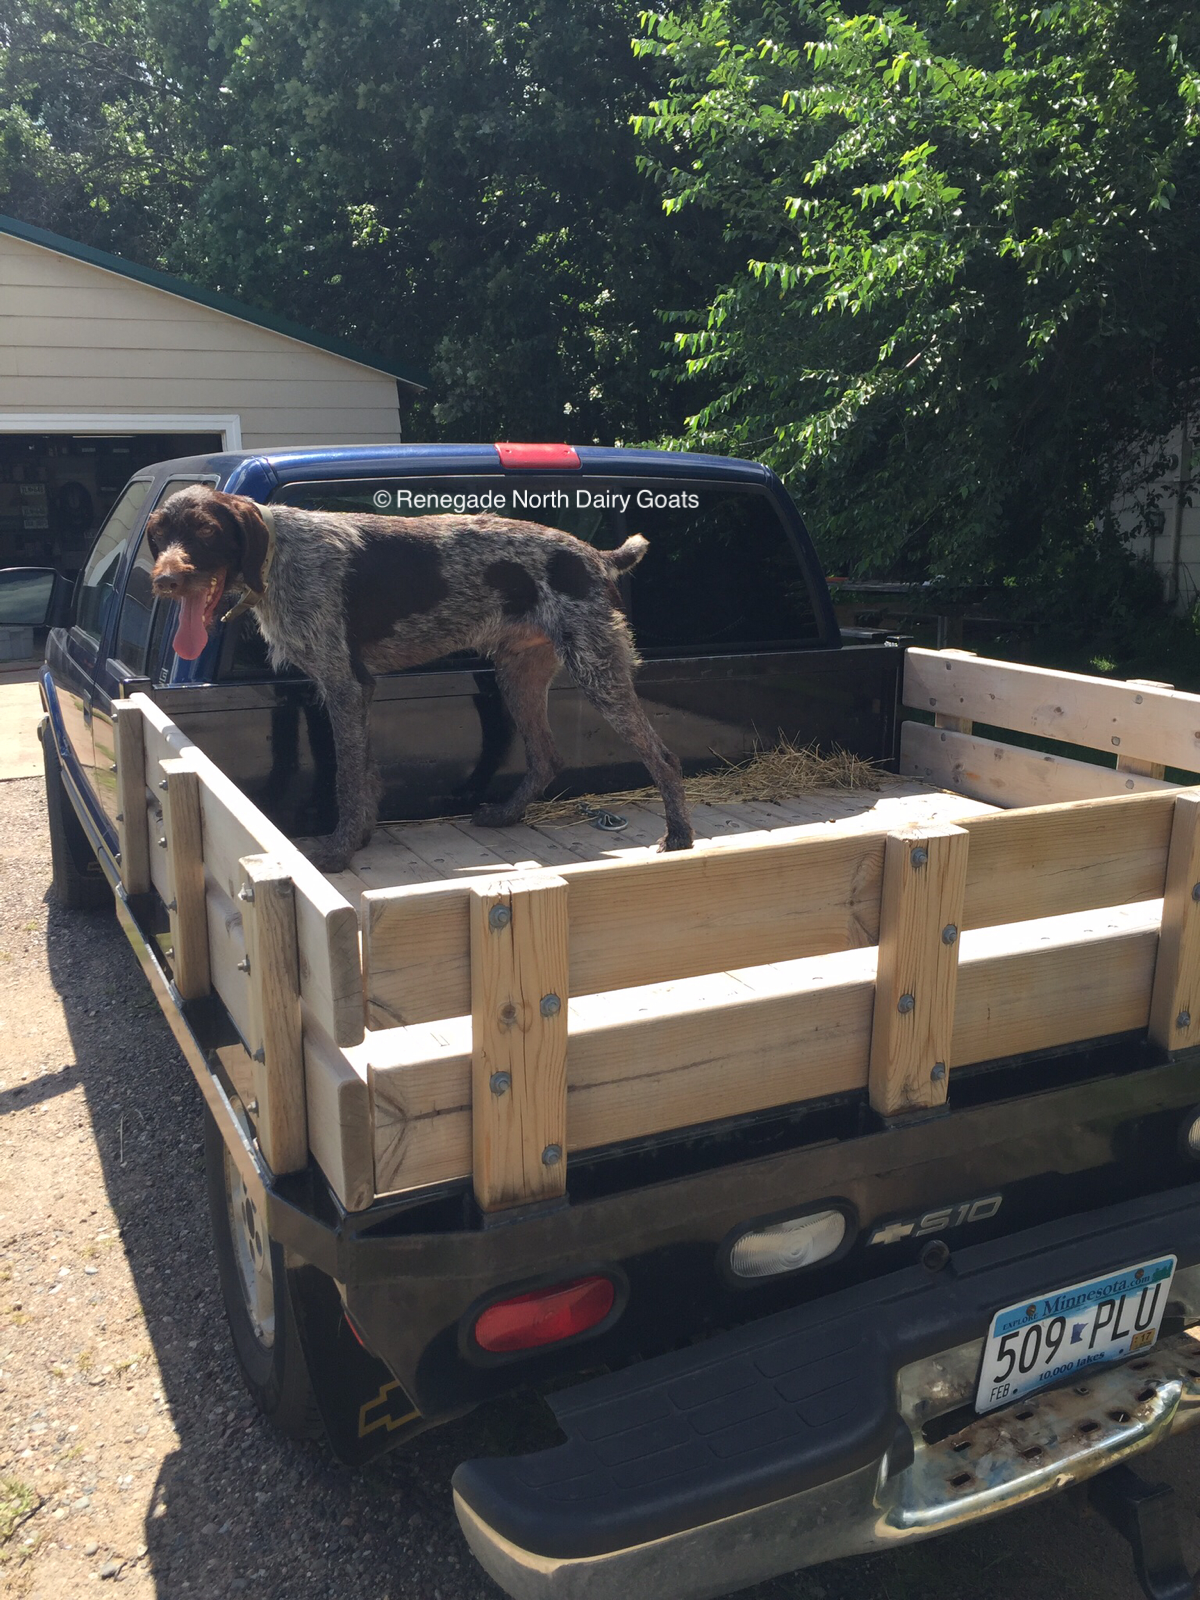 8/14/16 - Dude loves the back of the truck as it means going somewhere fun